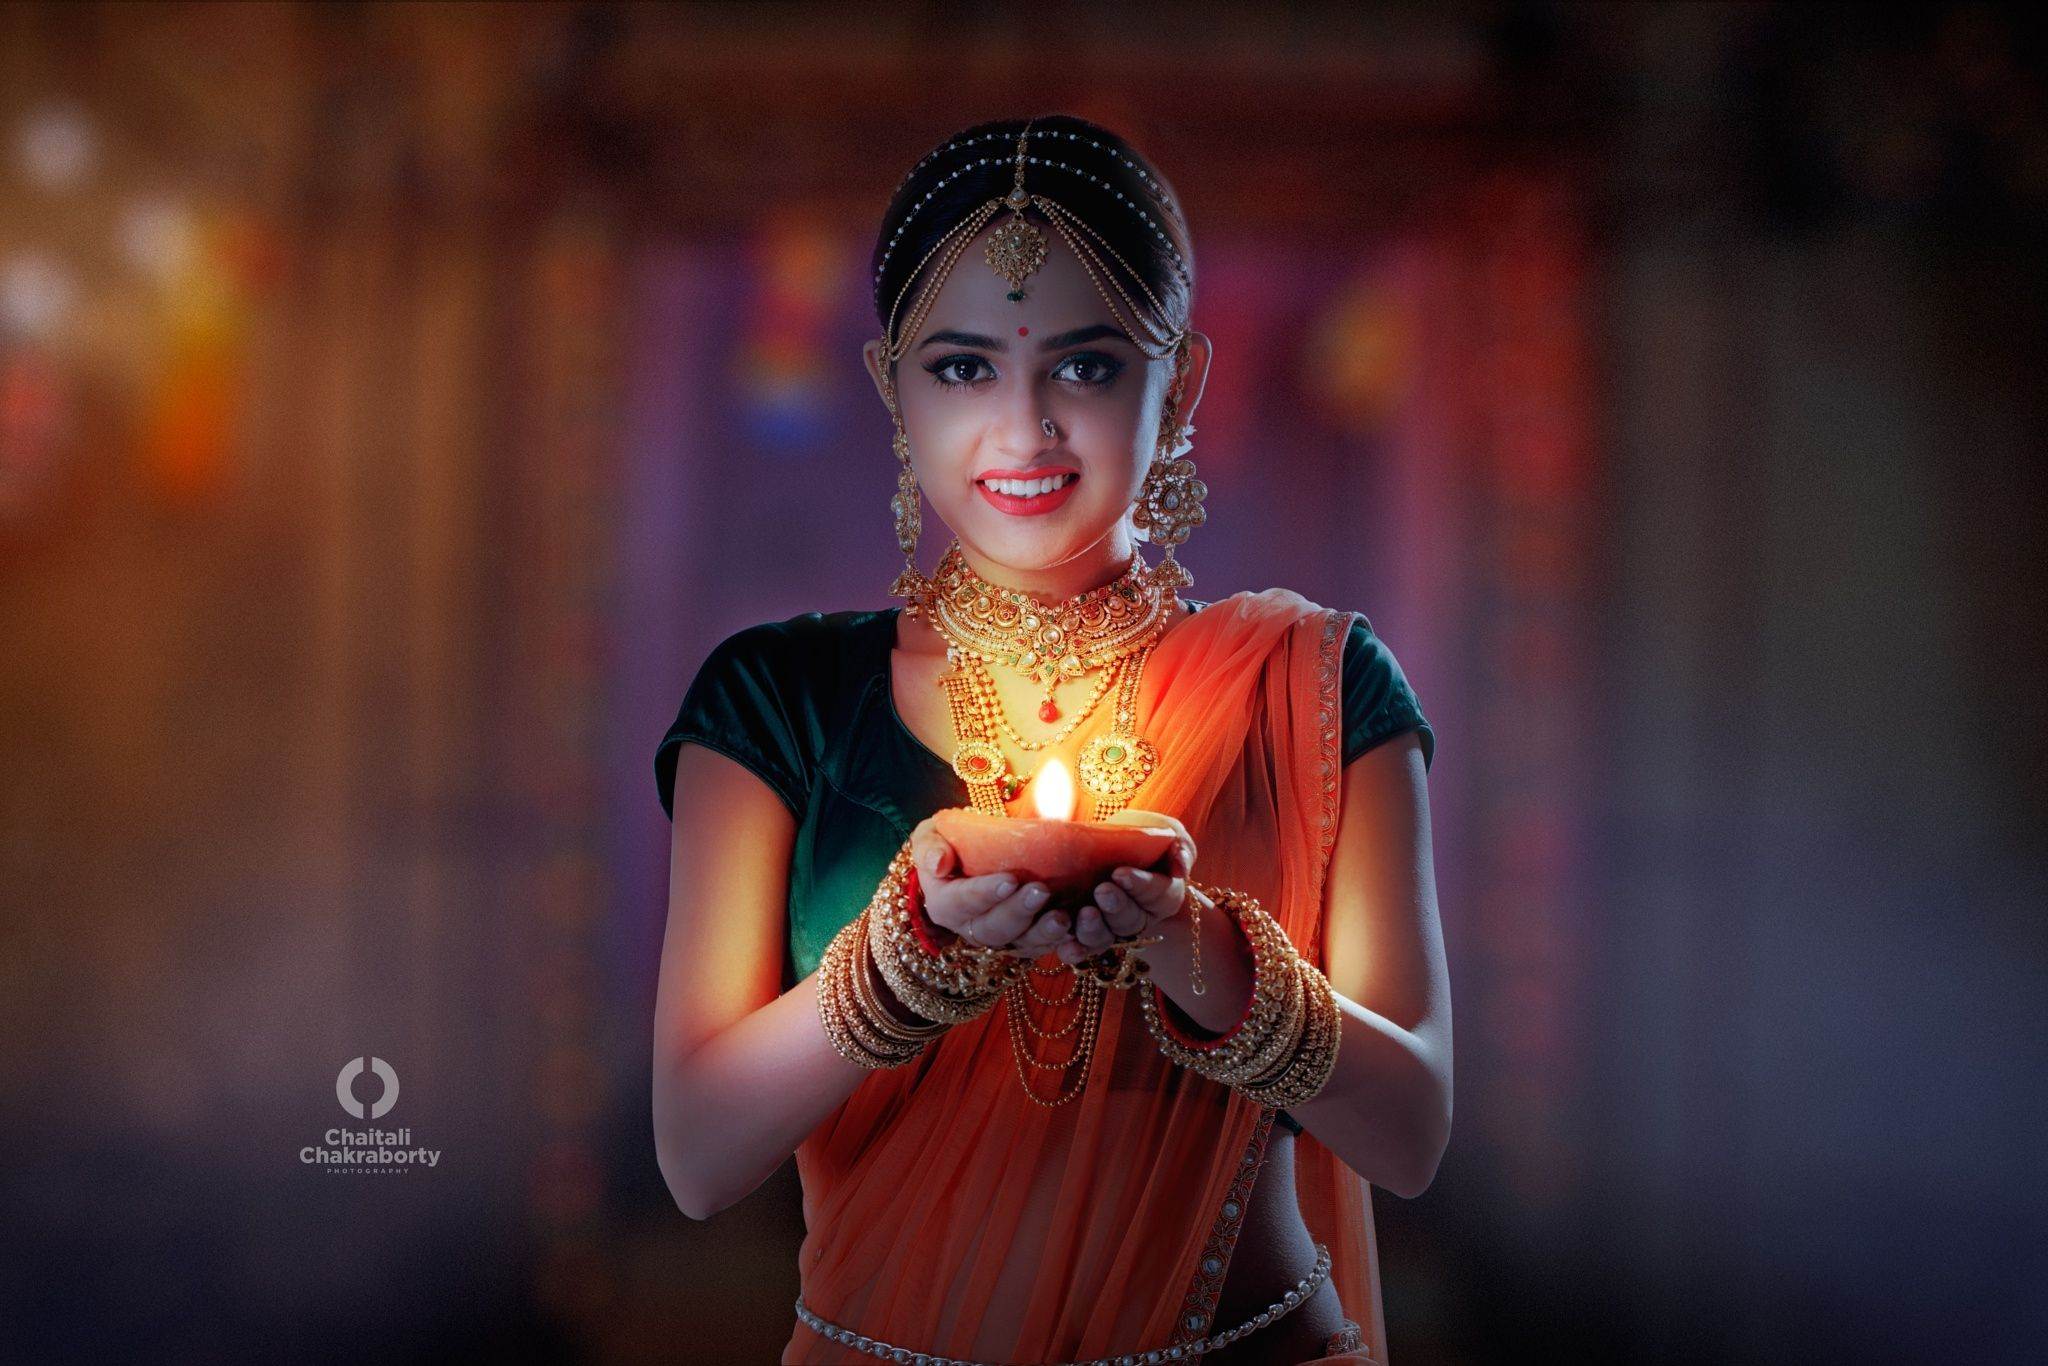 Lady With Light Lady With Light Diwali Light Indian Festival Diwali Lights Diwali Indian Festivals